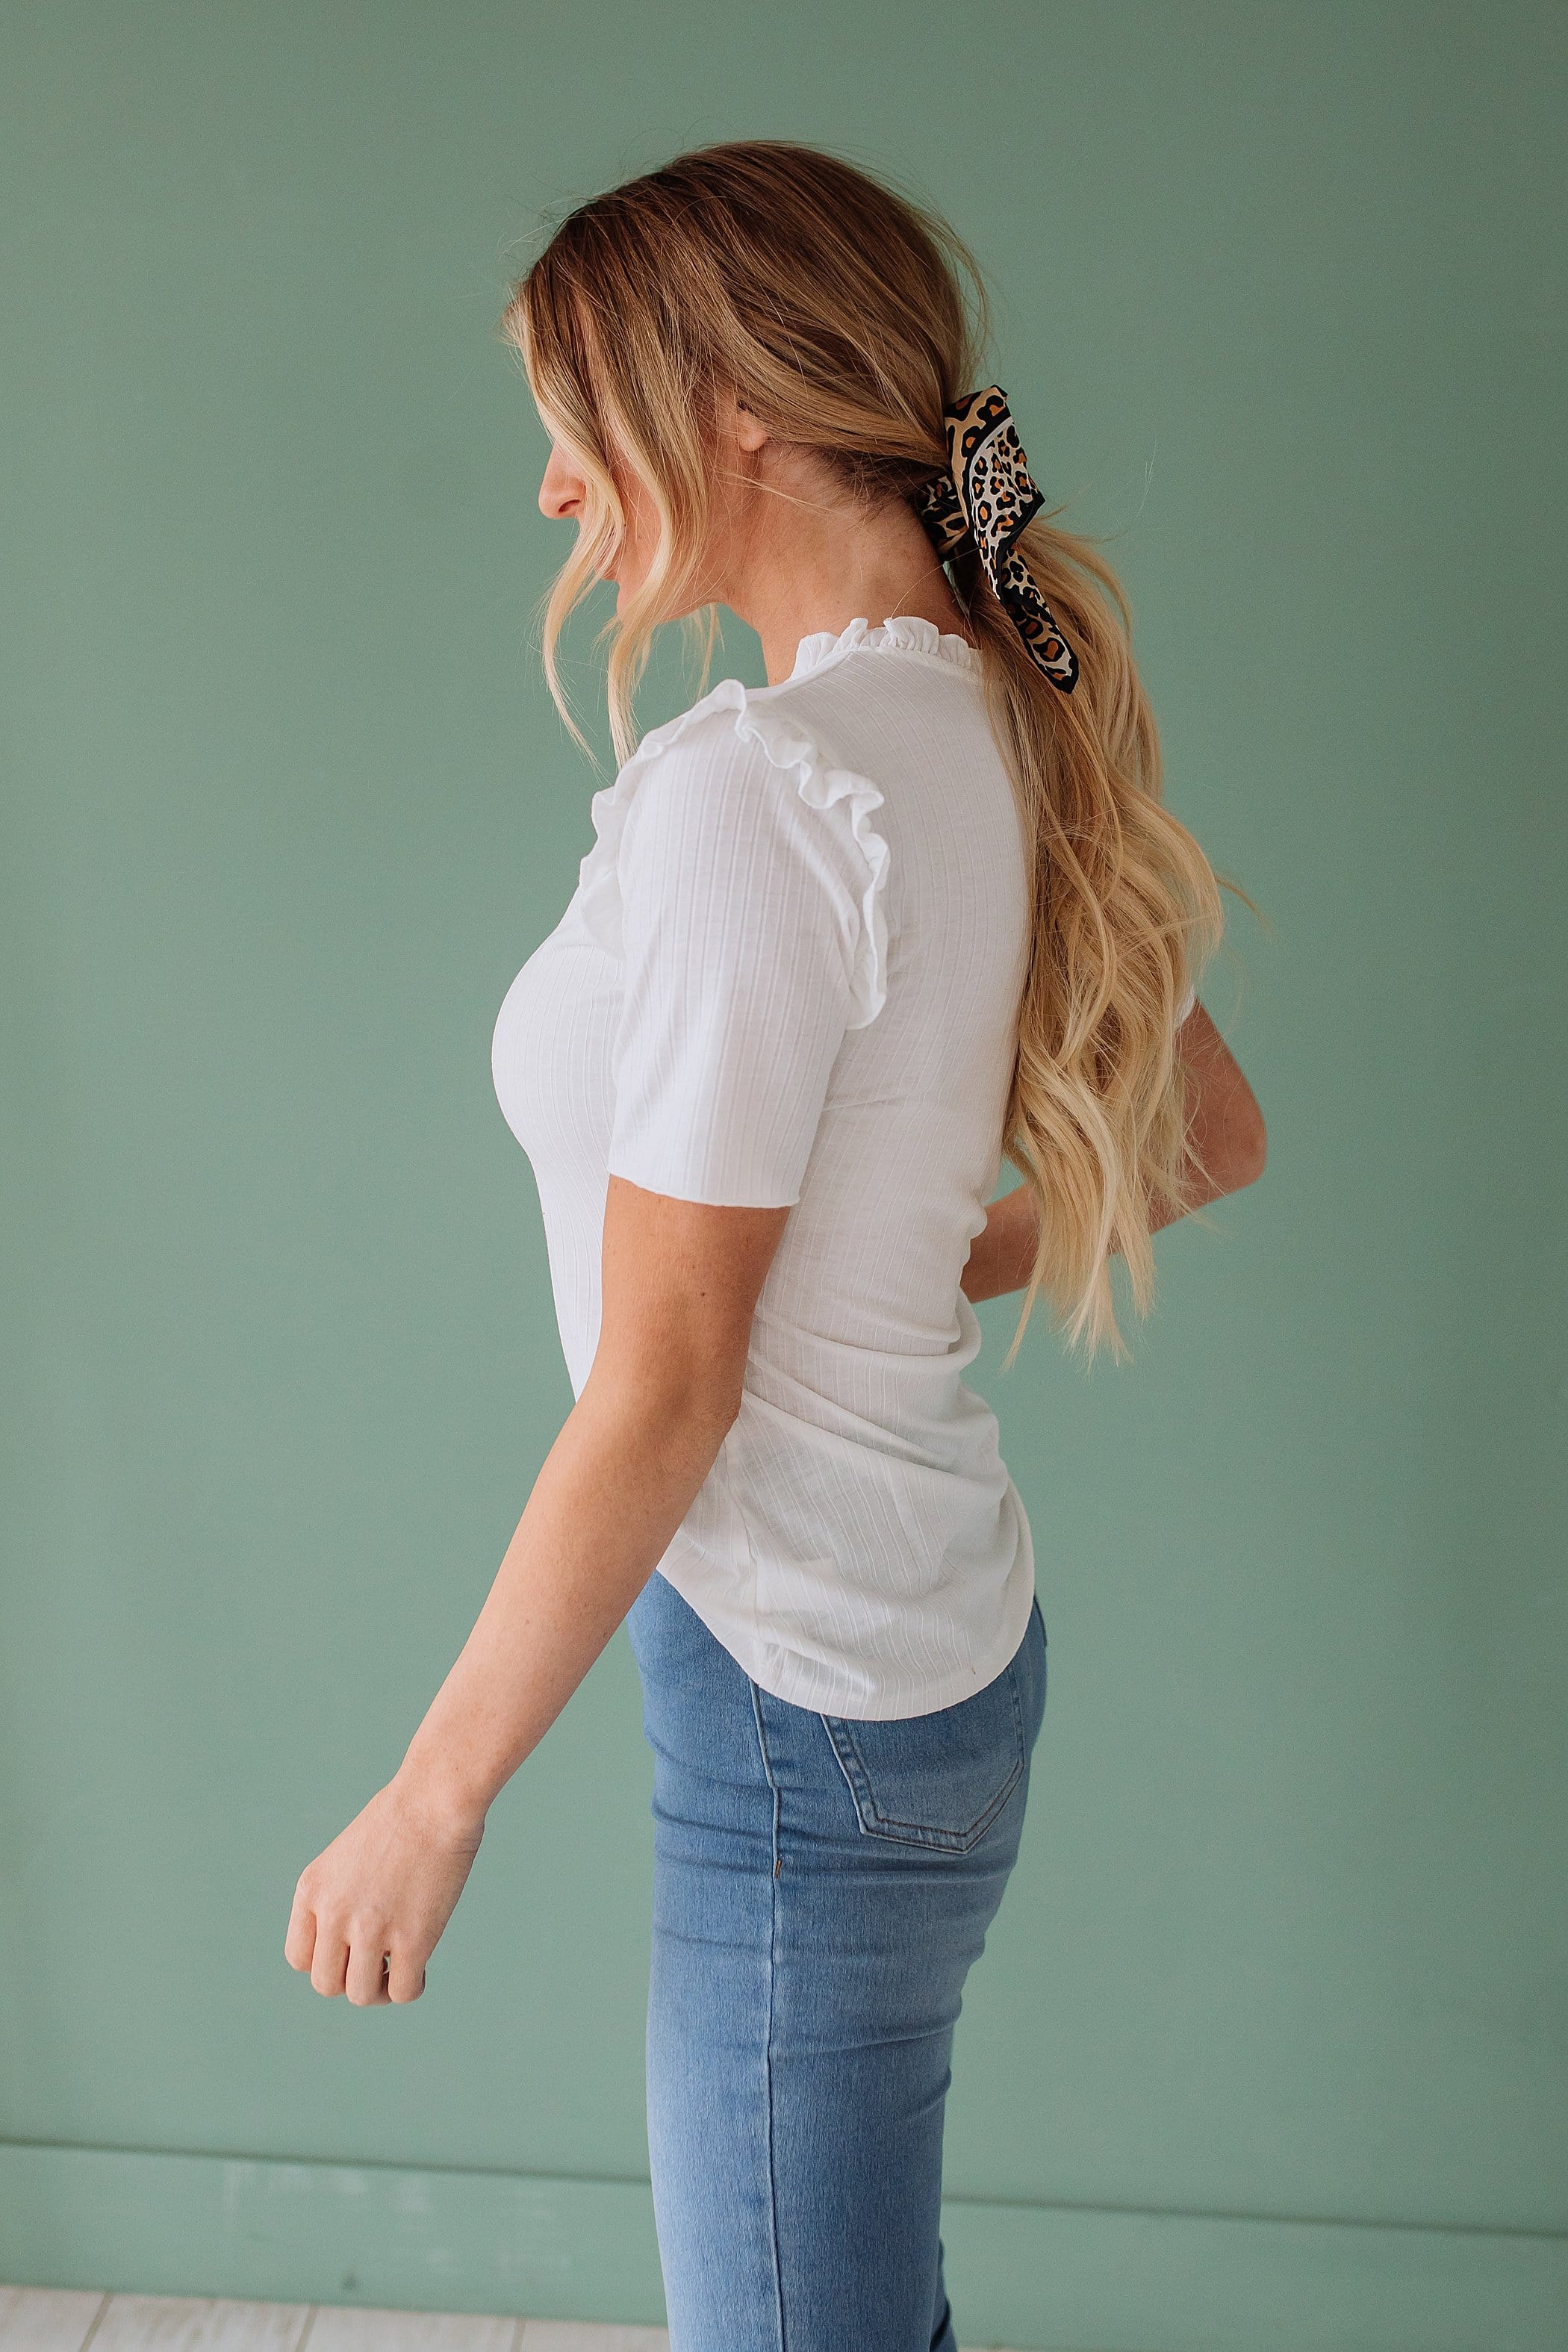 The Molly Ruffle Top in Black and Off White